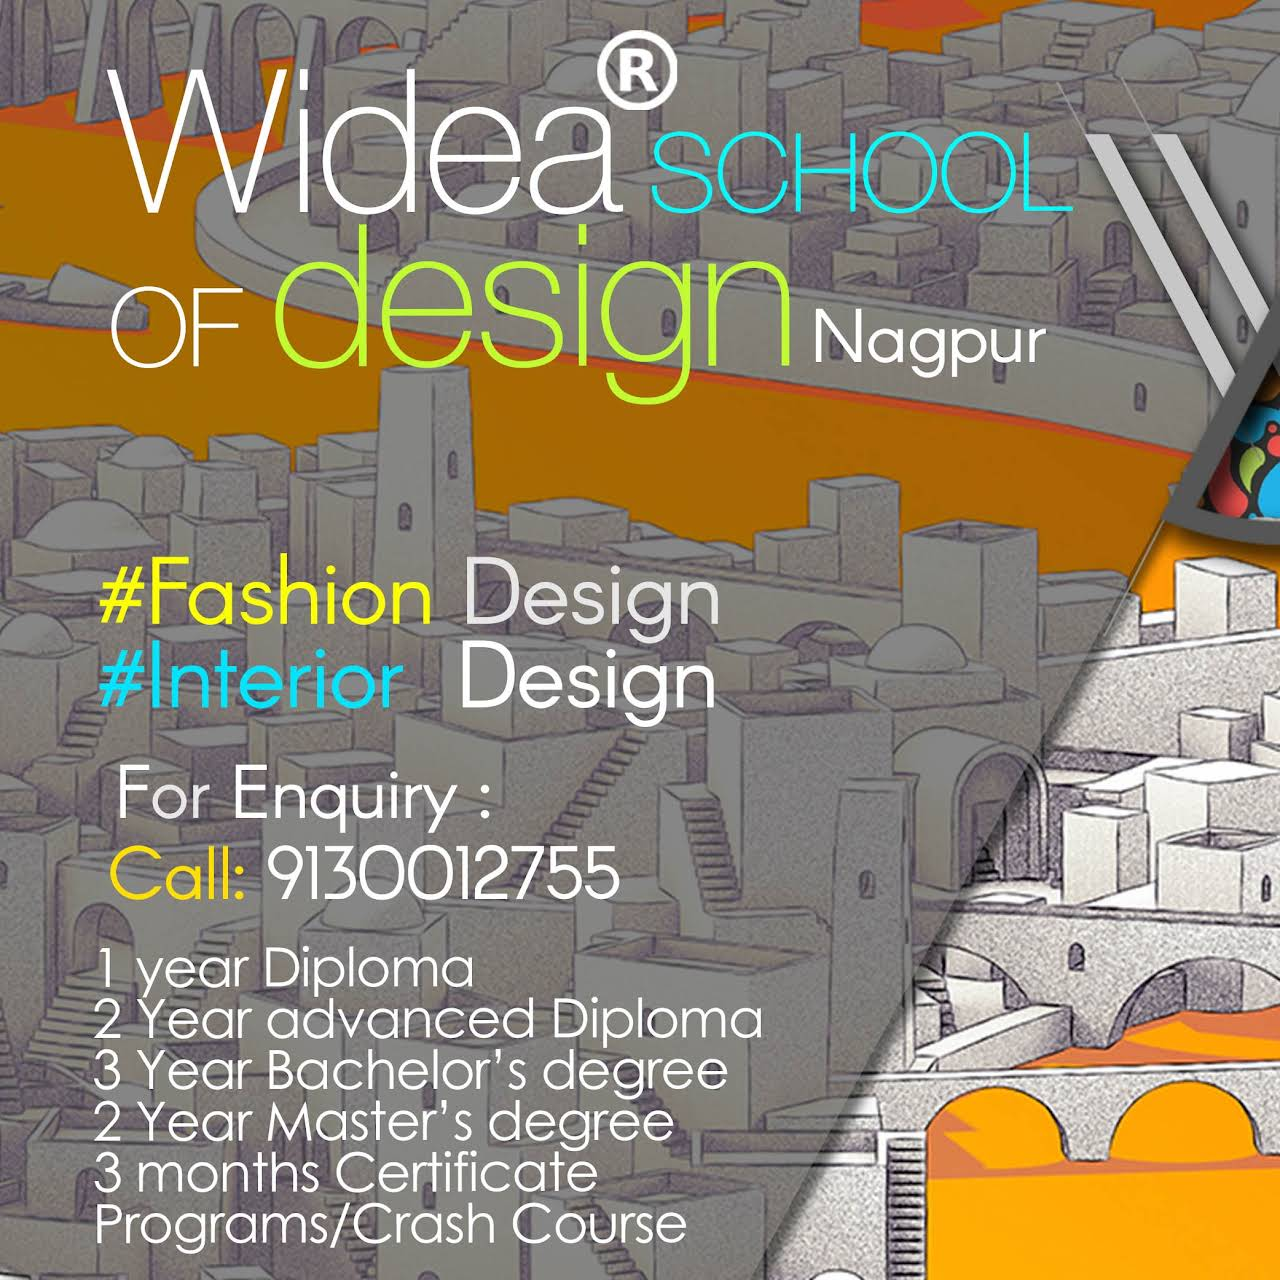 WIDEA SCHOOL OF DESIGN Fashion Designing Interior